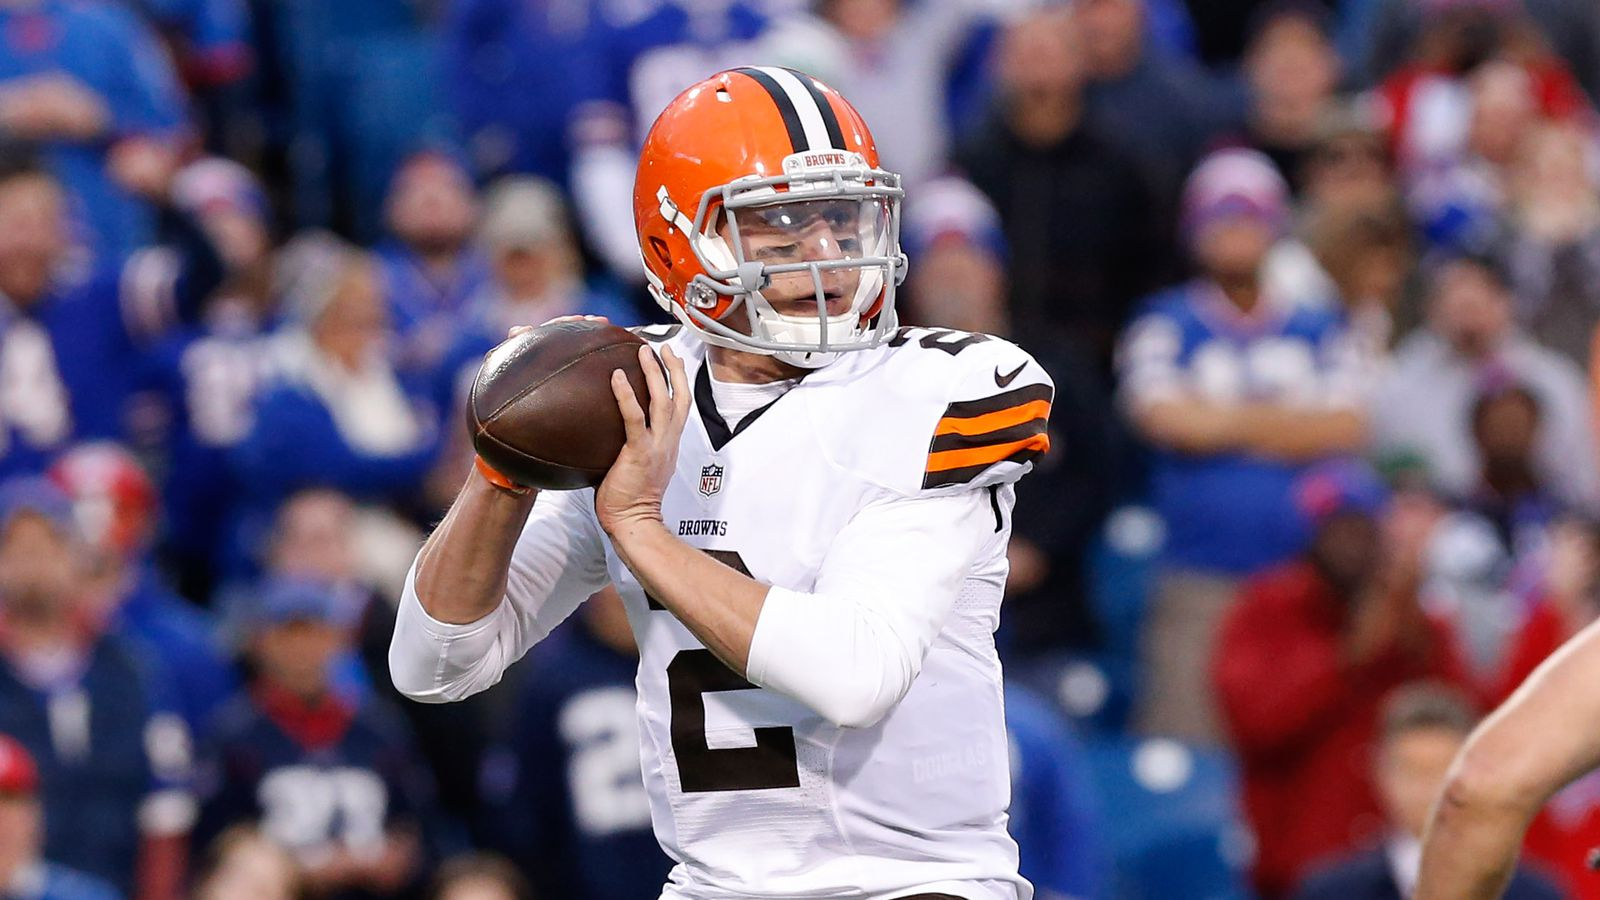 Bengals Vs Browns 2014 Live Stream Time Tv Schedule And